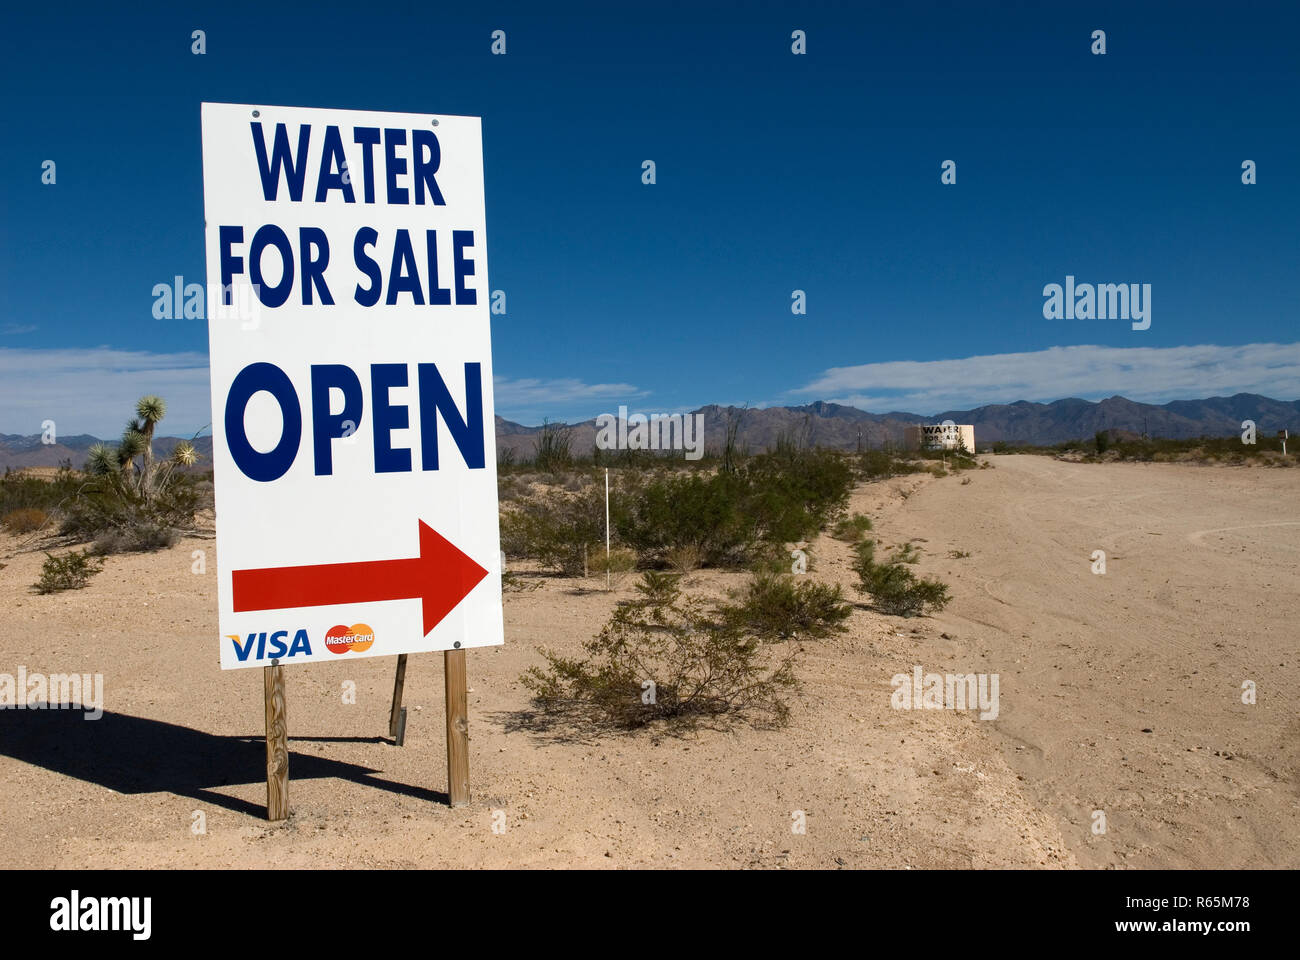 Water for Sale in the Arizona Desert, USA. Concept of thirst or dehydration. - Stock Image